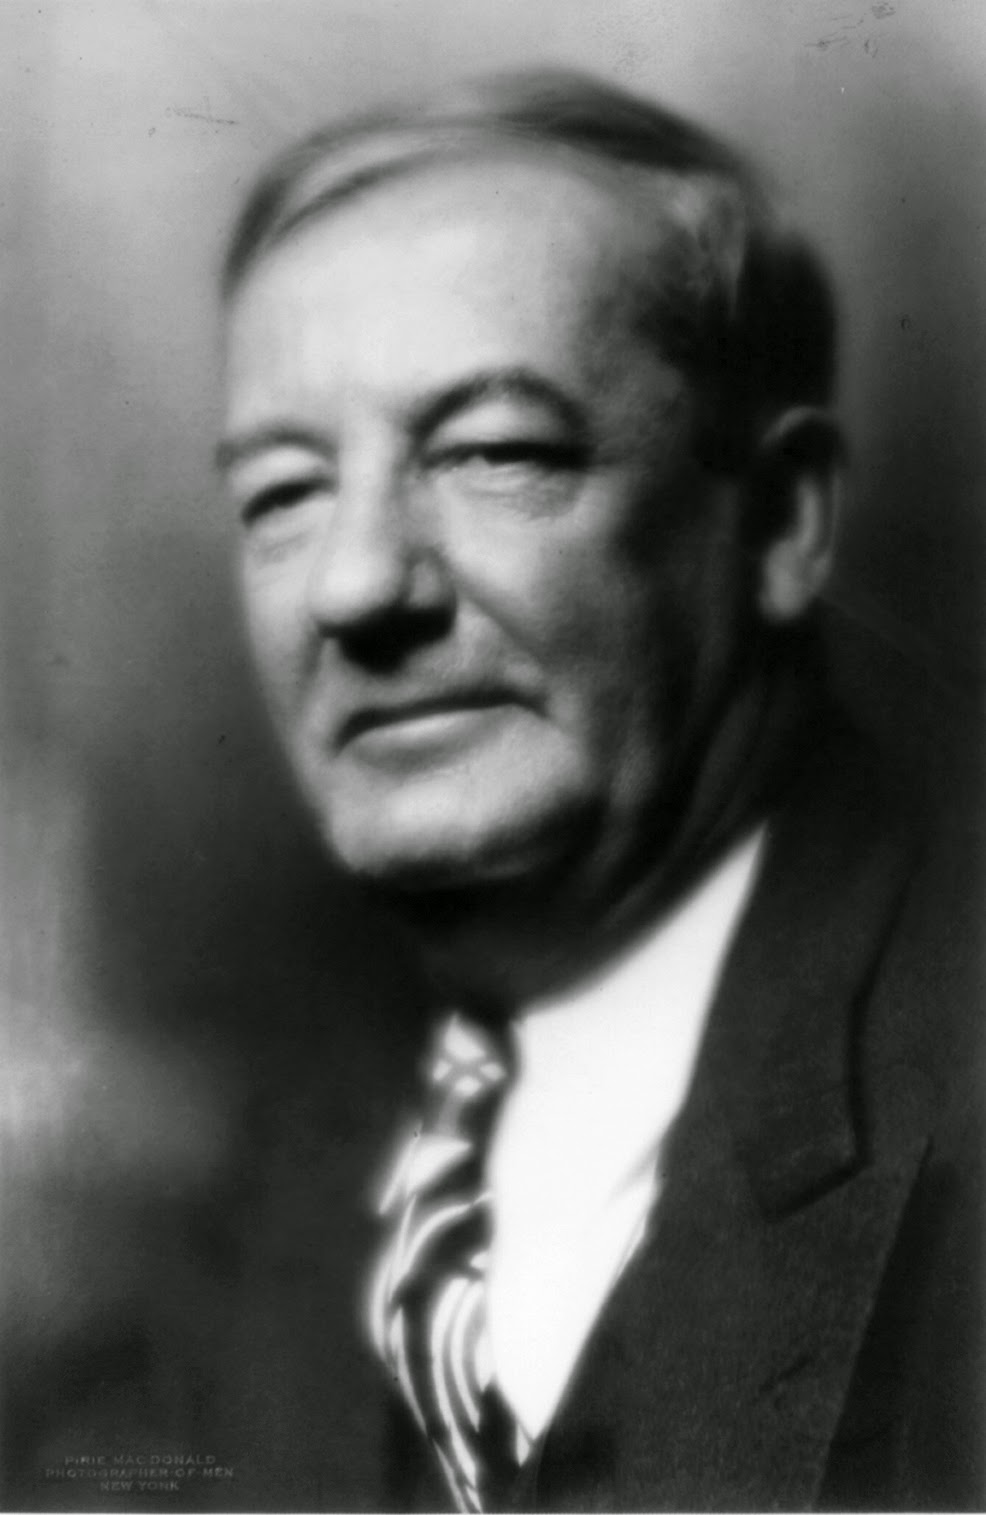 Photo of Sherwood Anderson.  Image source: http://upload.wikimedia.org/wikipedia/commons/2/28/Sherwood_Anderson_cph.3b16123.jpg